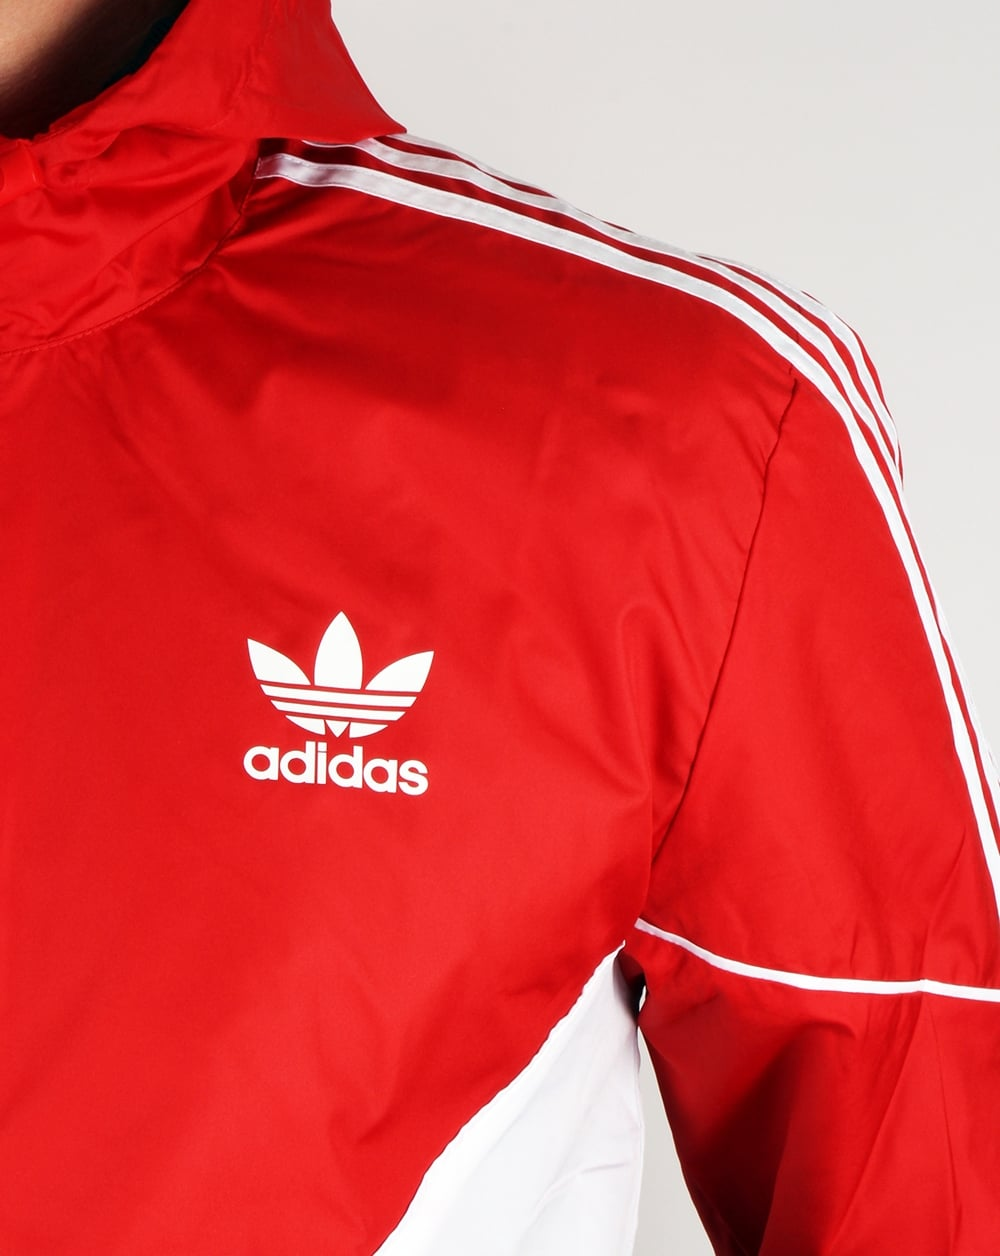 Adidas Originals Colorado Windbreaker Red Navy Jacket Coat Mens